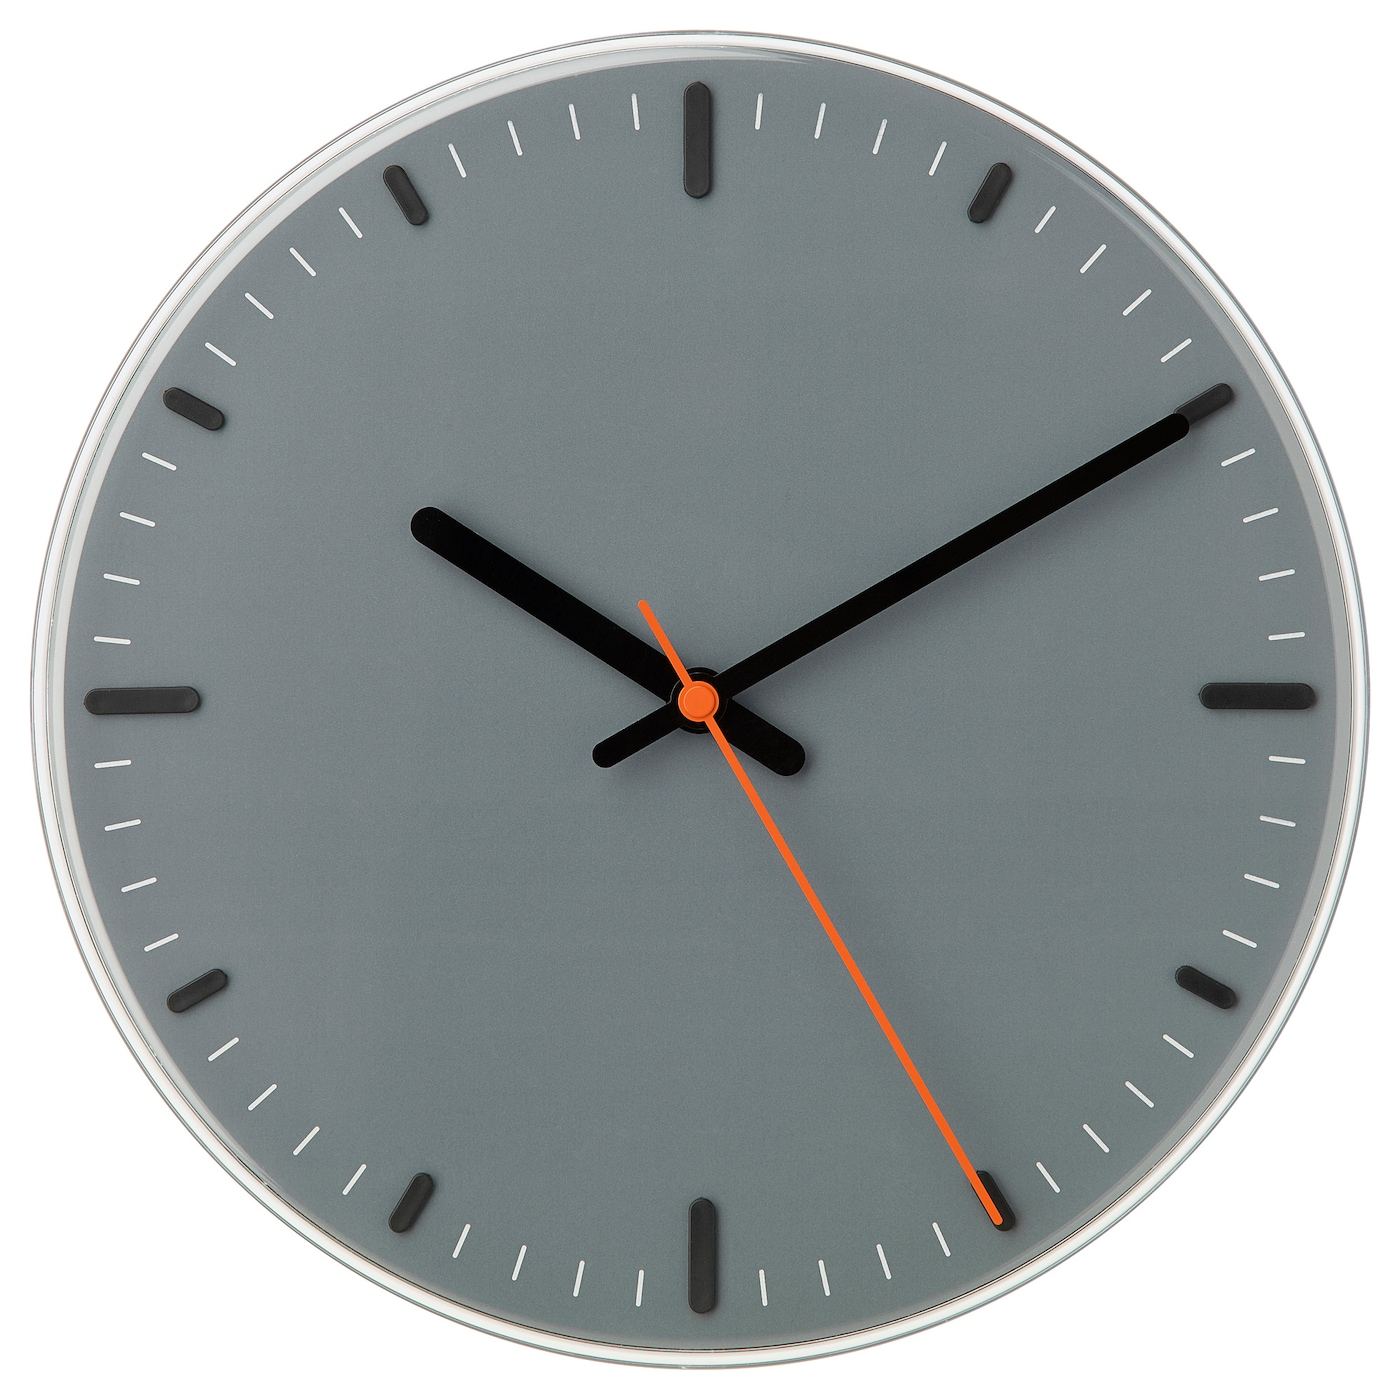 IKEA SVAJPA wall clock No disturbing ticking sounds since the clock has a silent quartz movement.